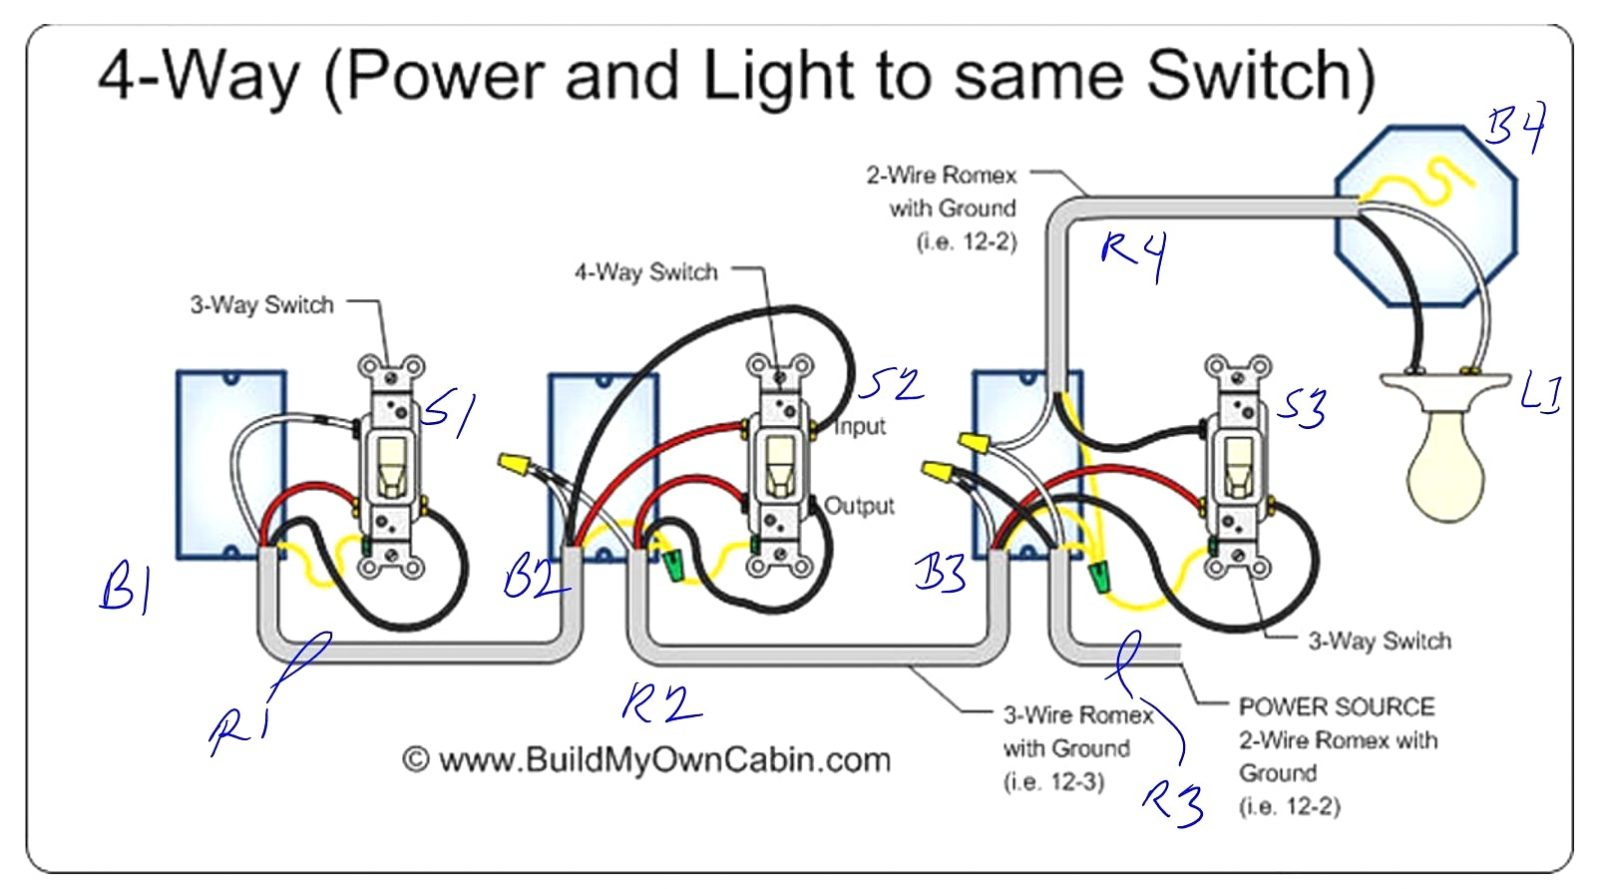 hight resolution of lutron 4 way dimmer wiring diagram lutron dimmer switch wiring diagram lutron 4 way dimmer